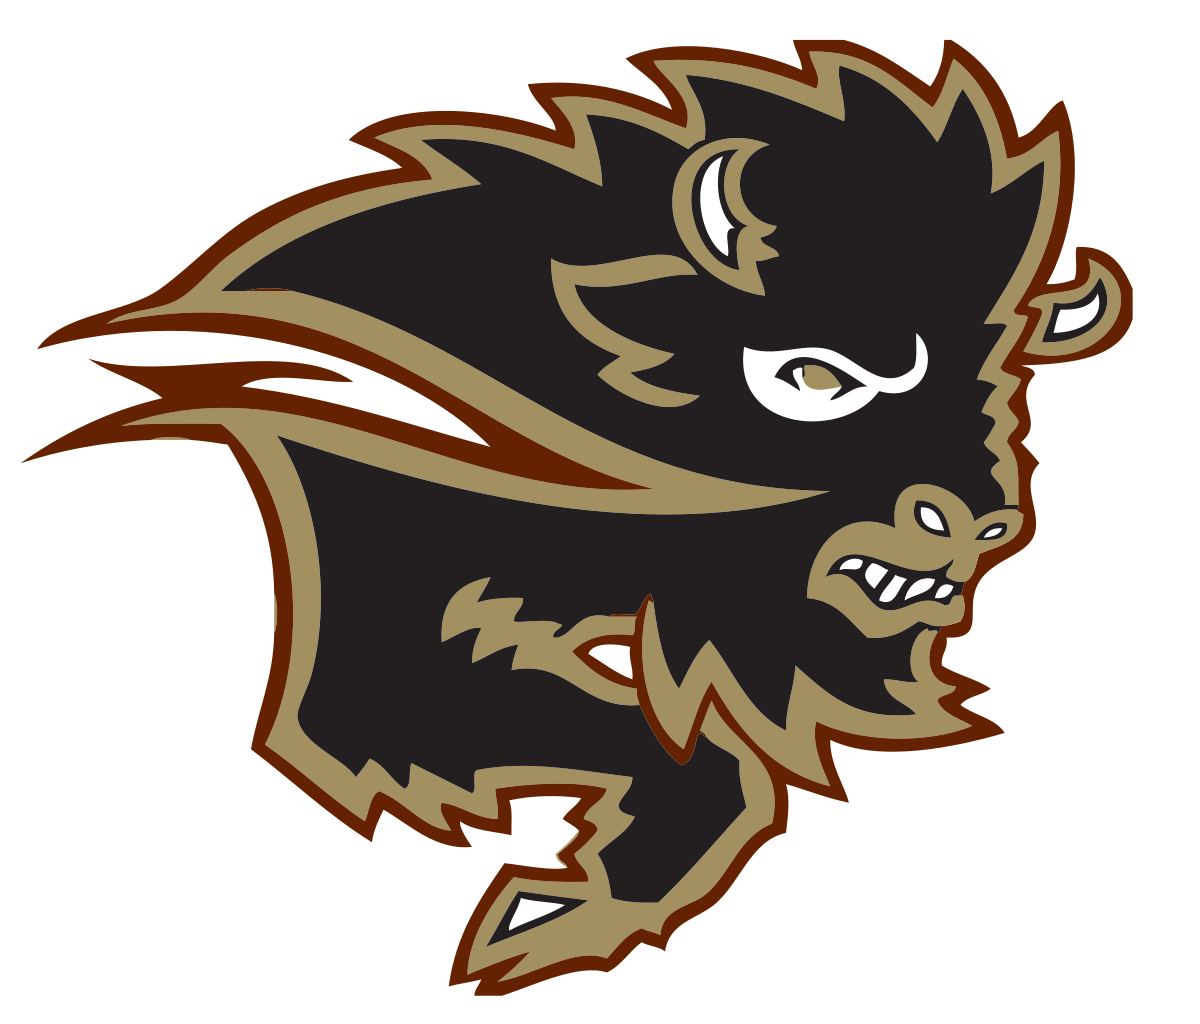 Football player running through defence clipart svg free library Manitoba Bisons - Wikipedia svg free library